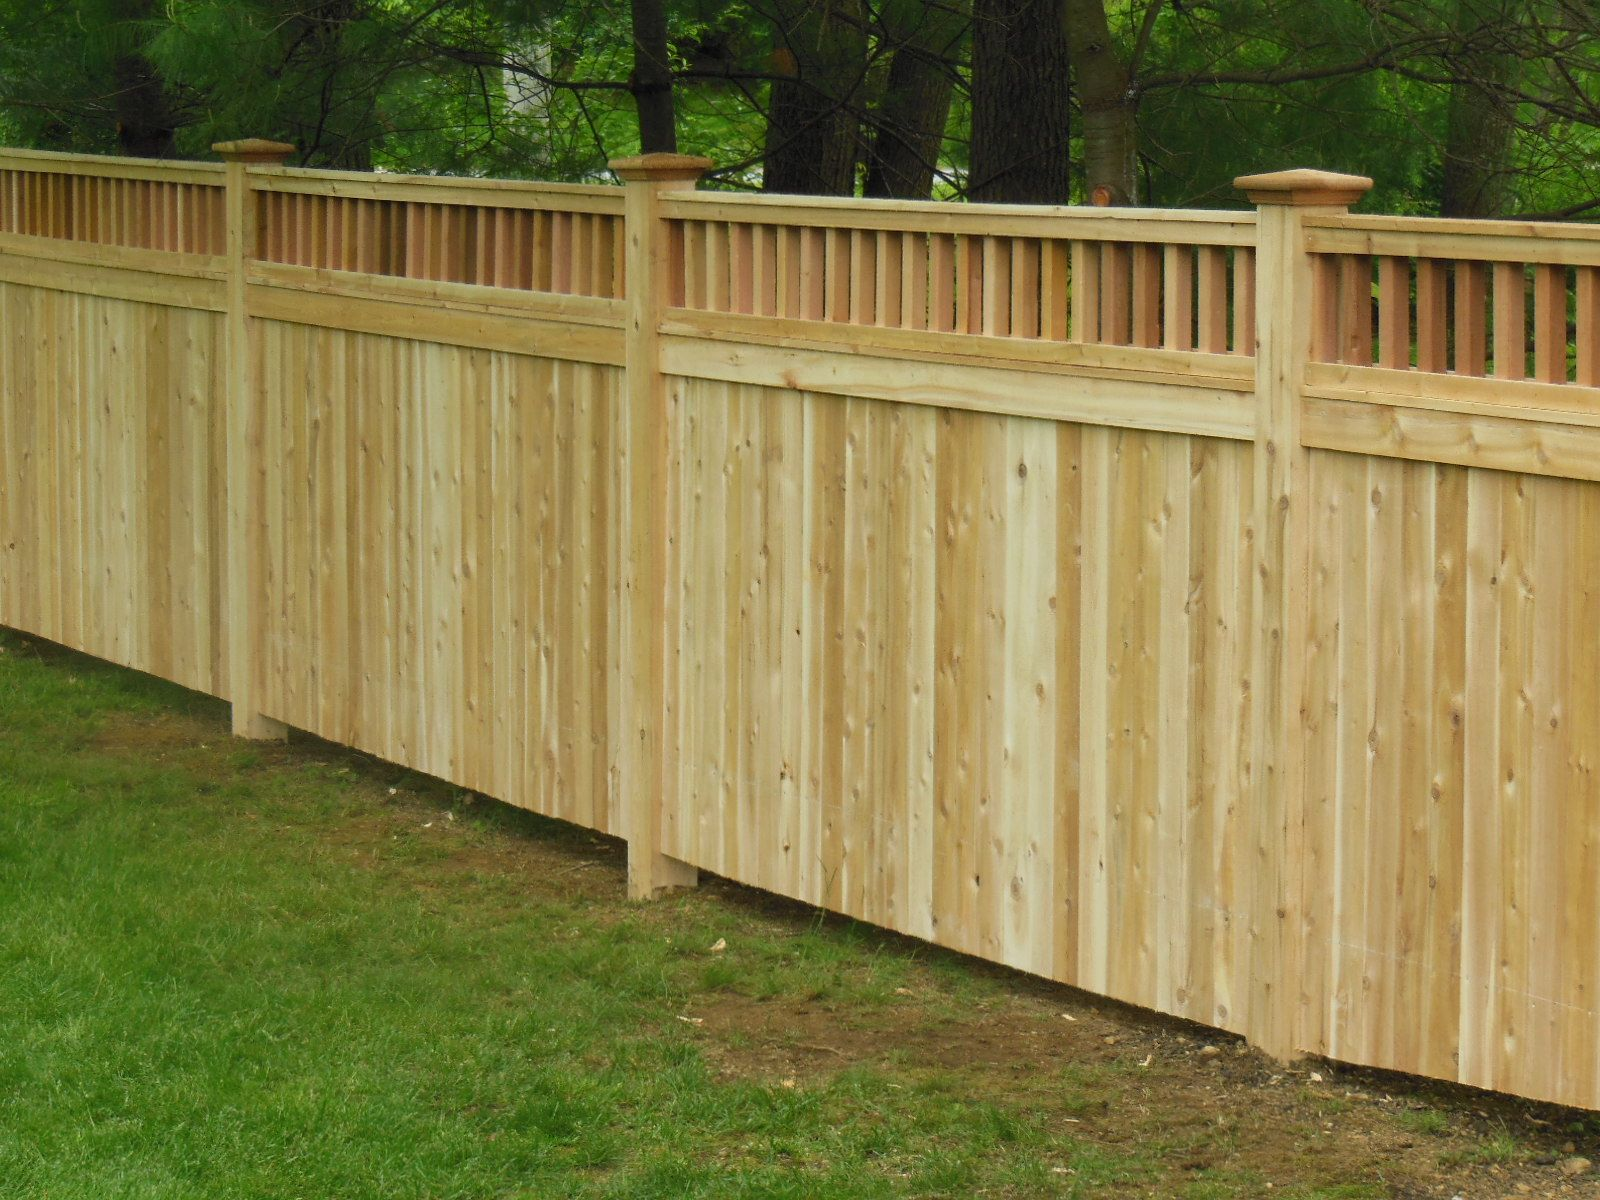 a natural wood cedar privacy fence featuring tongue and groove